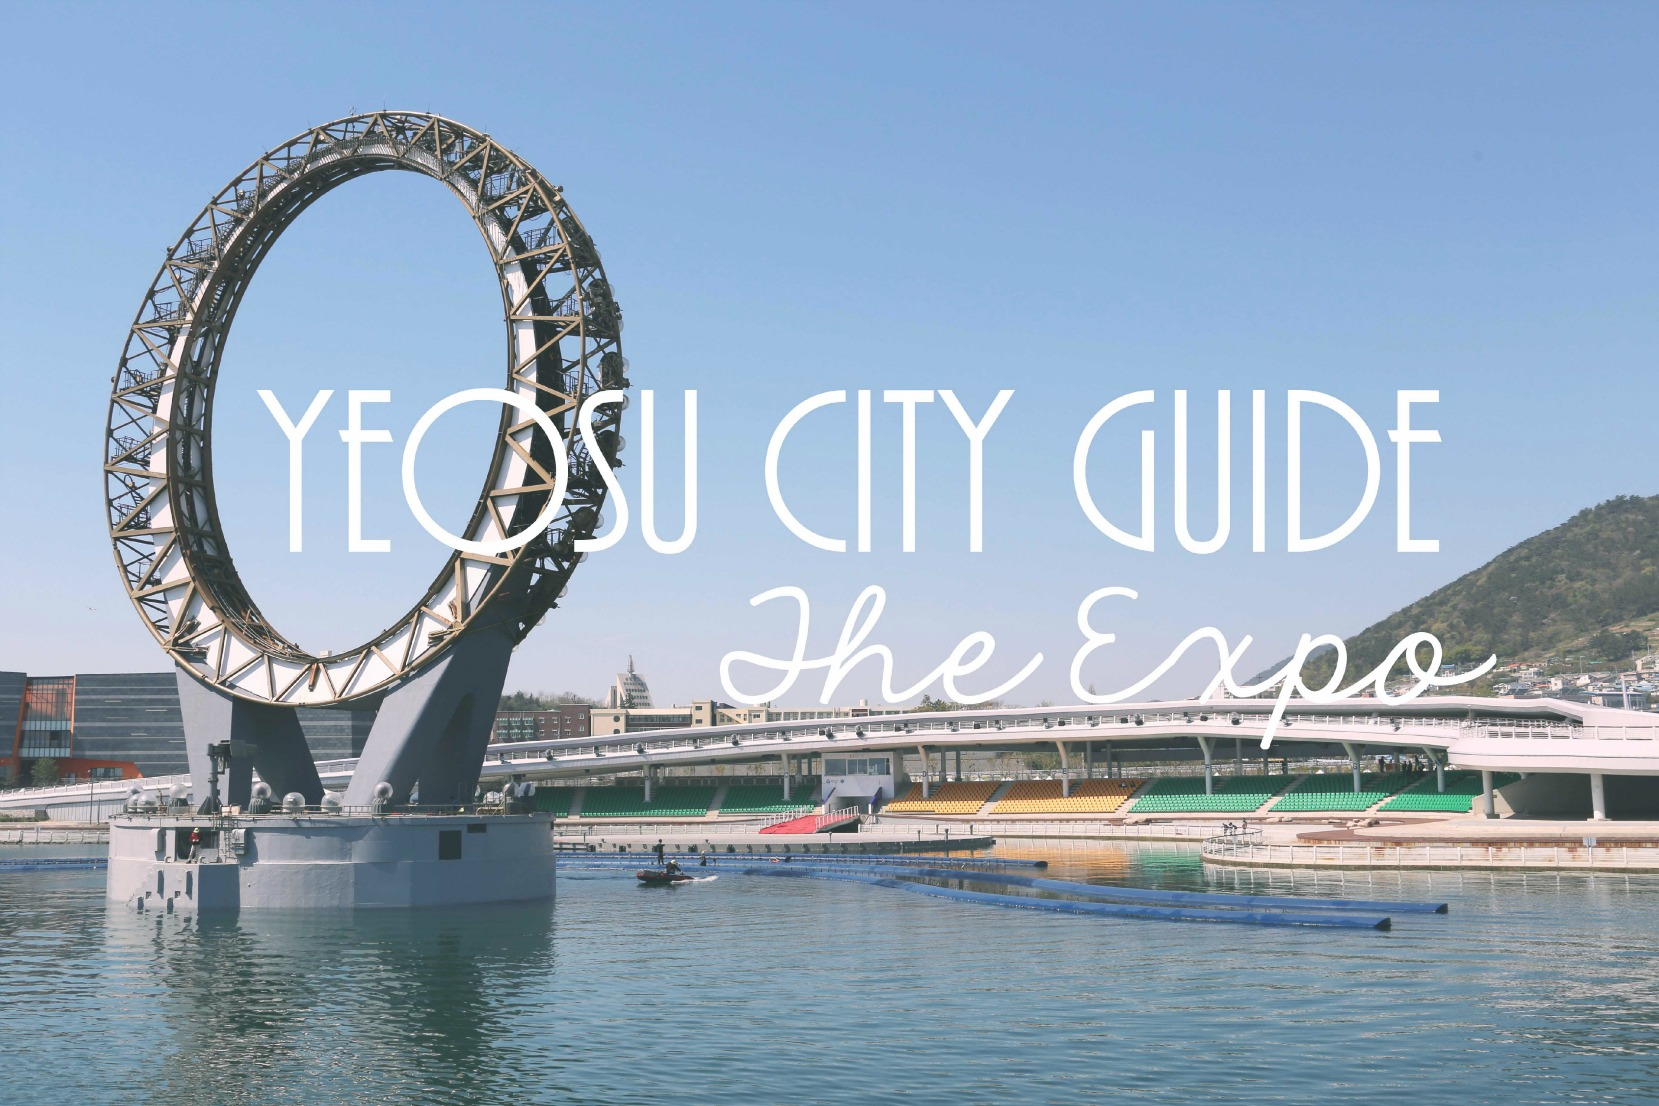 Yeosu City Guide – The Expo